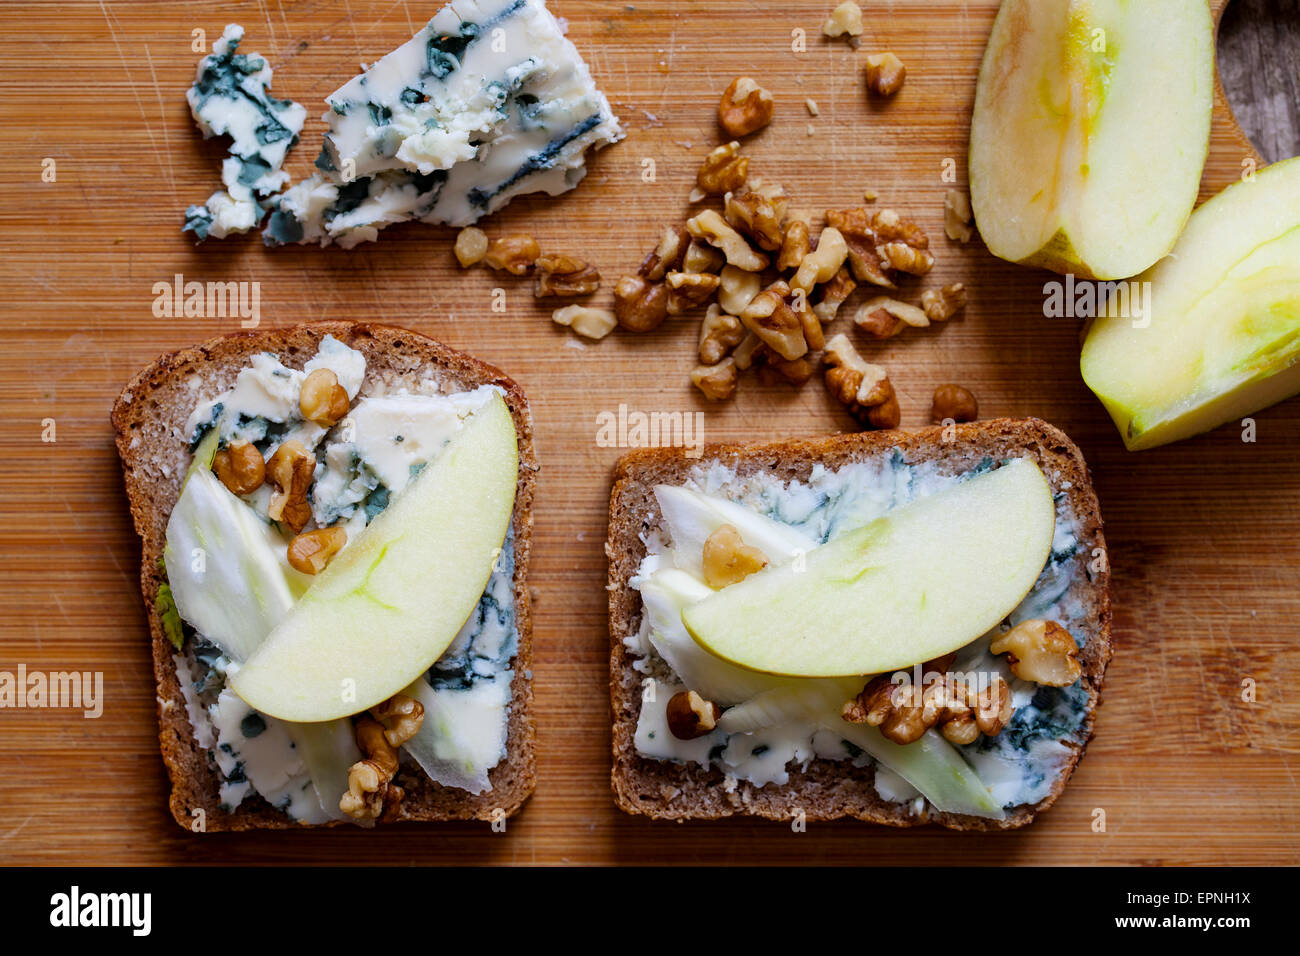 Rye bread with blue cheese, apple and walnut - Stock Image